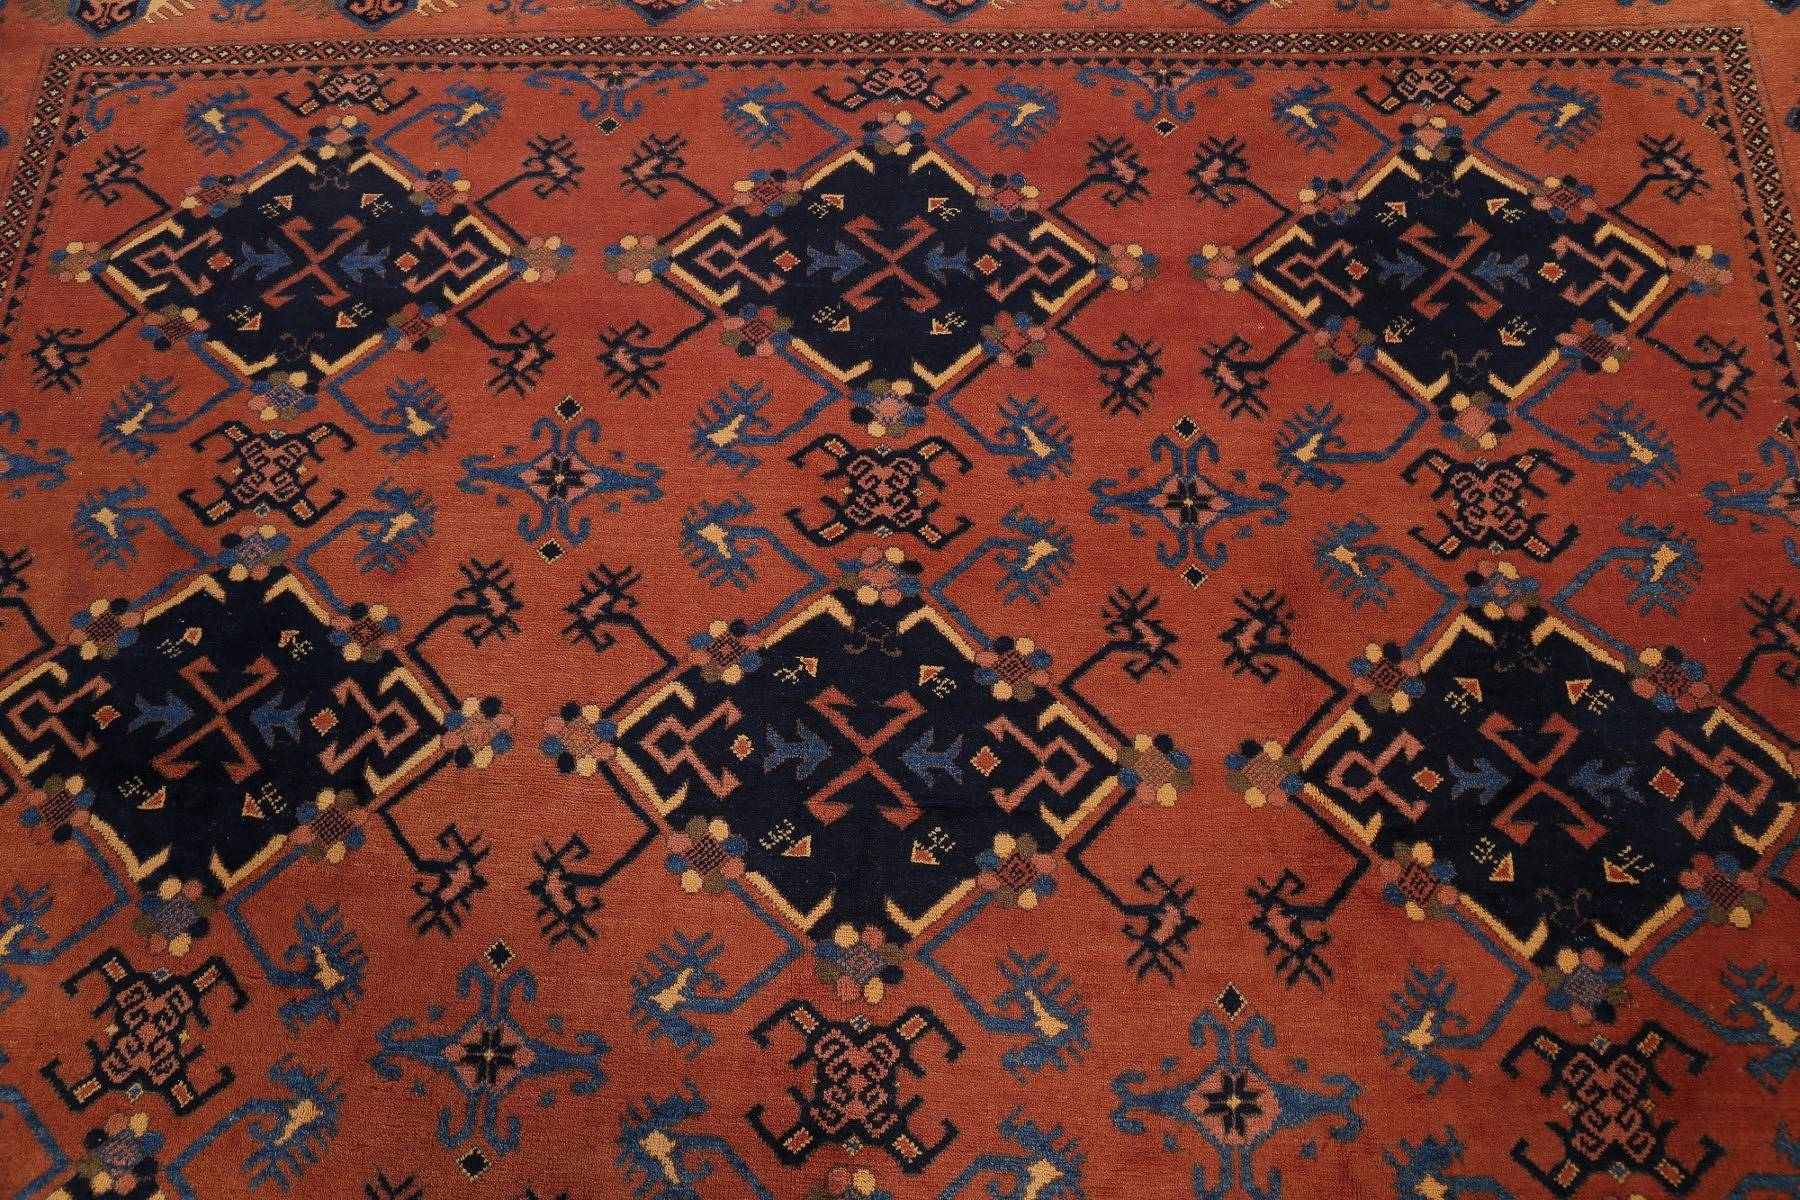 Geometric Orange Balouch Afghan Oriental Hand-Knotted Area Rug Wool 8x12